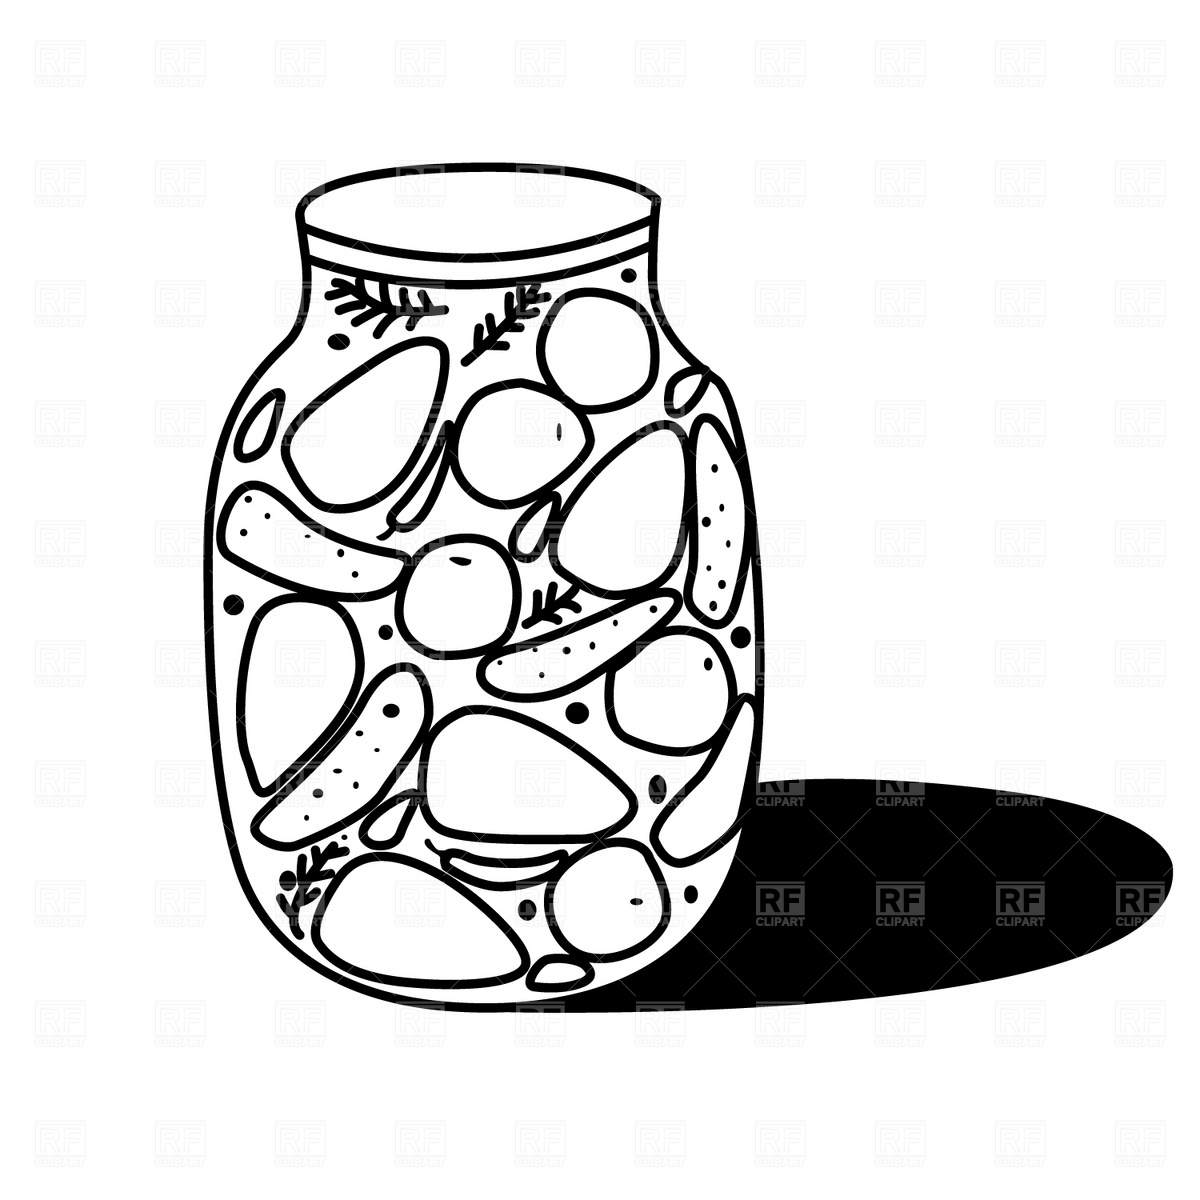 Vegetables black and white canned vegetables clipart free images.